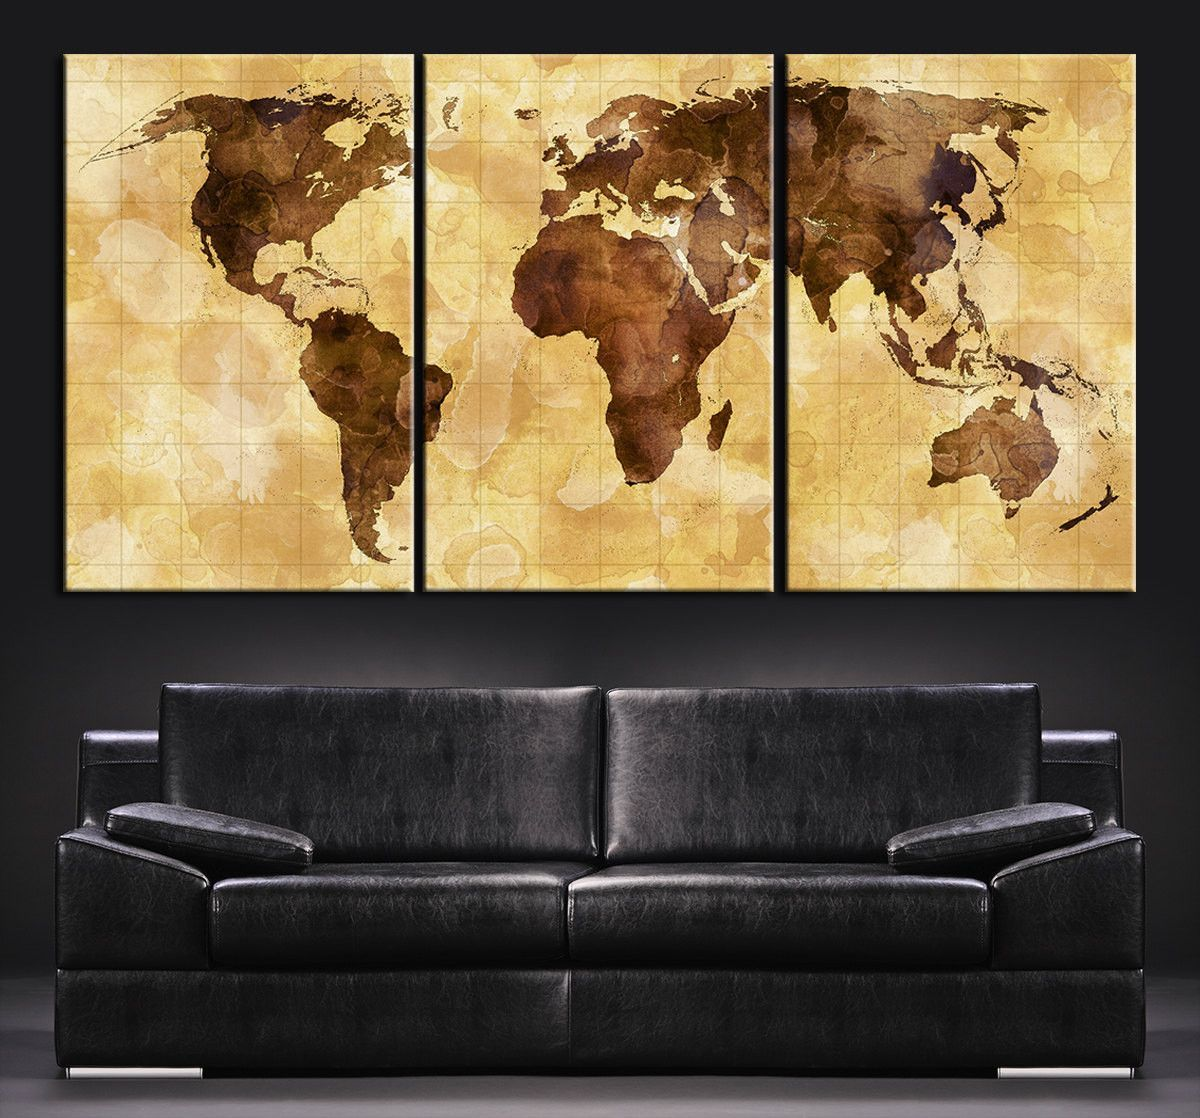 Old Style Sephia World Map Canvas Print - Contemporary 3 Panel ...